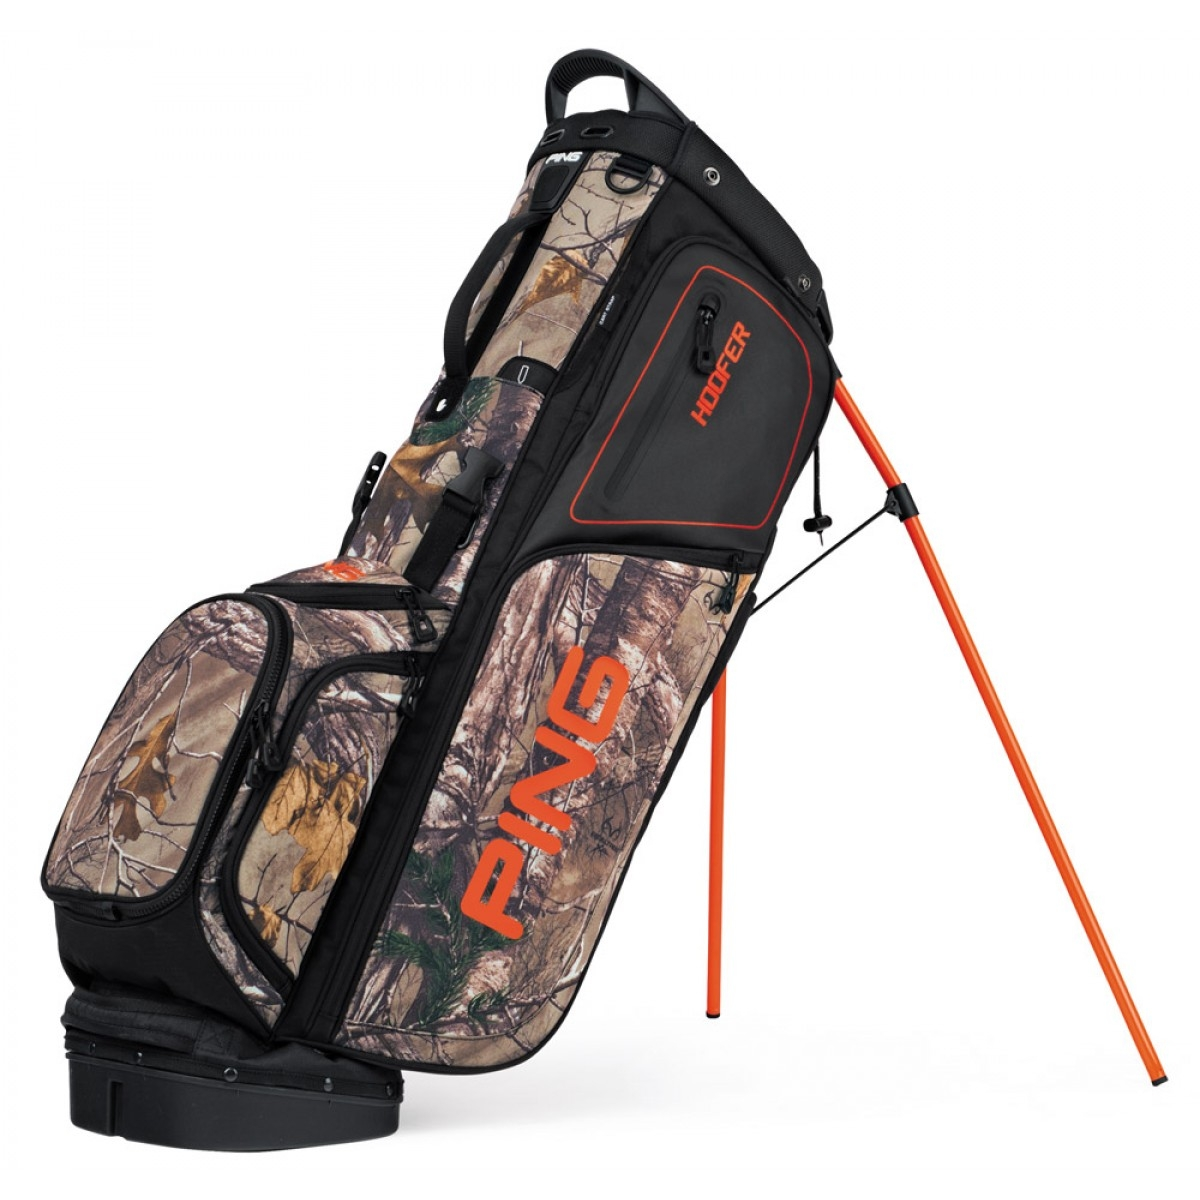 Ping Hoofer Limited Edition Stand Bag - Realtree Camo